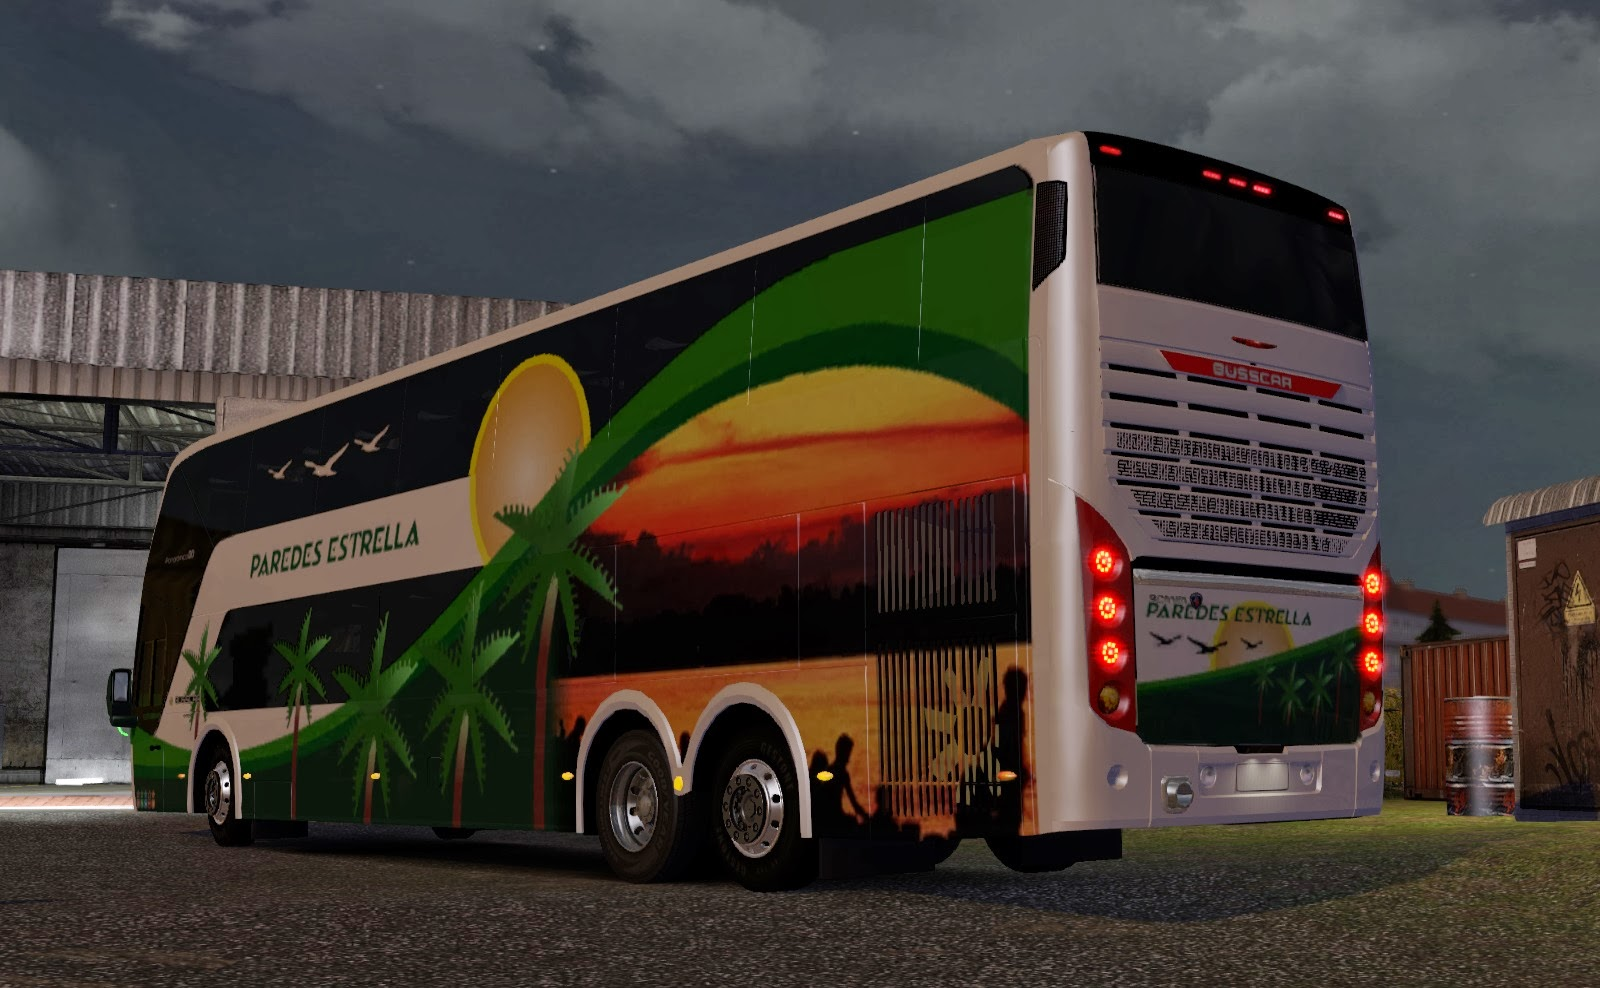 The ultimate source of patches addons for Euro Truck Simulator 2. Playable